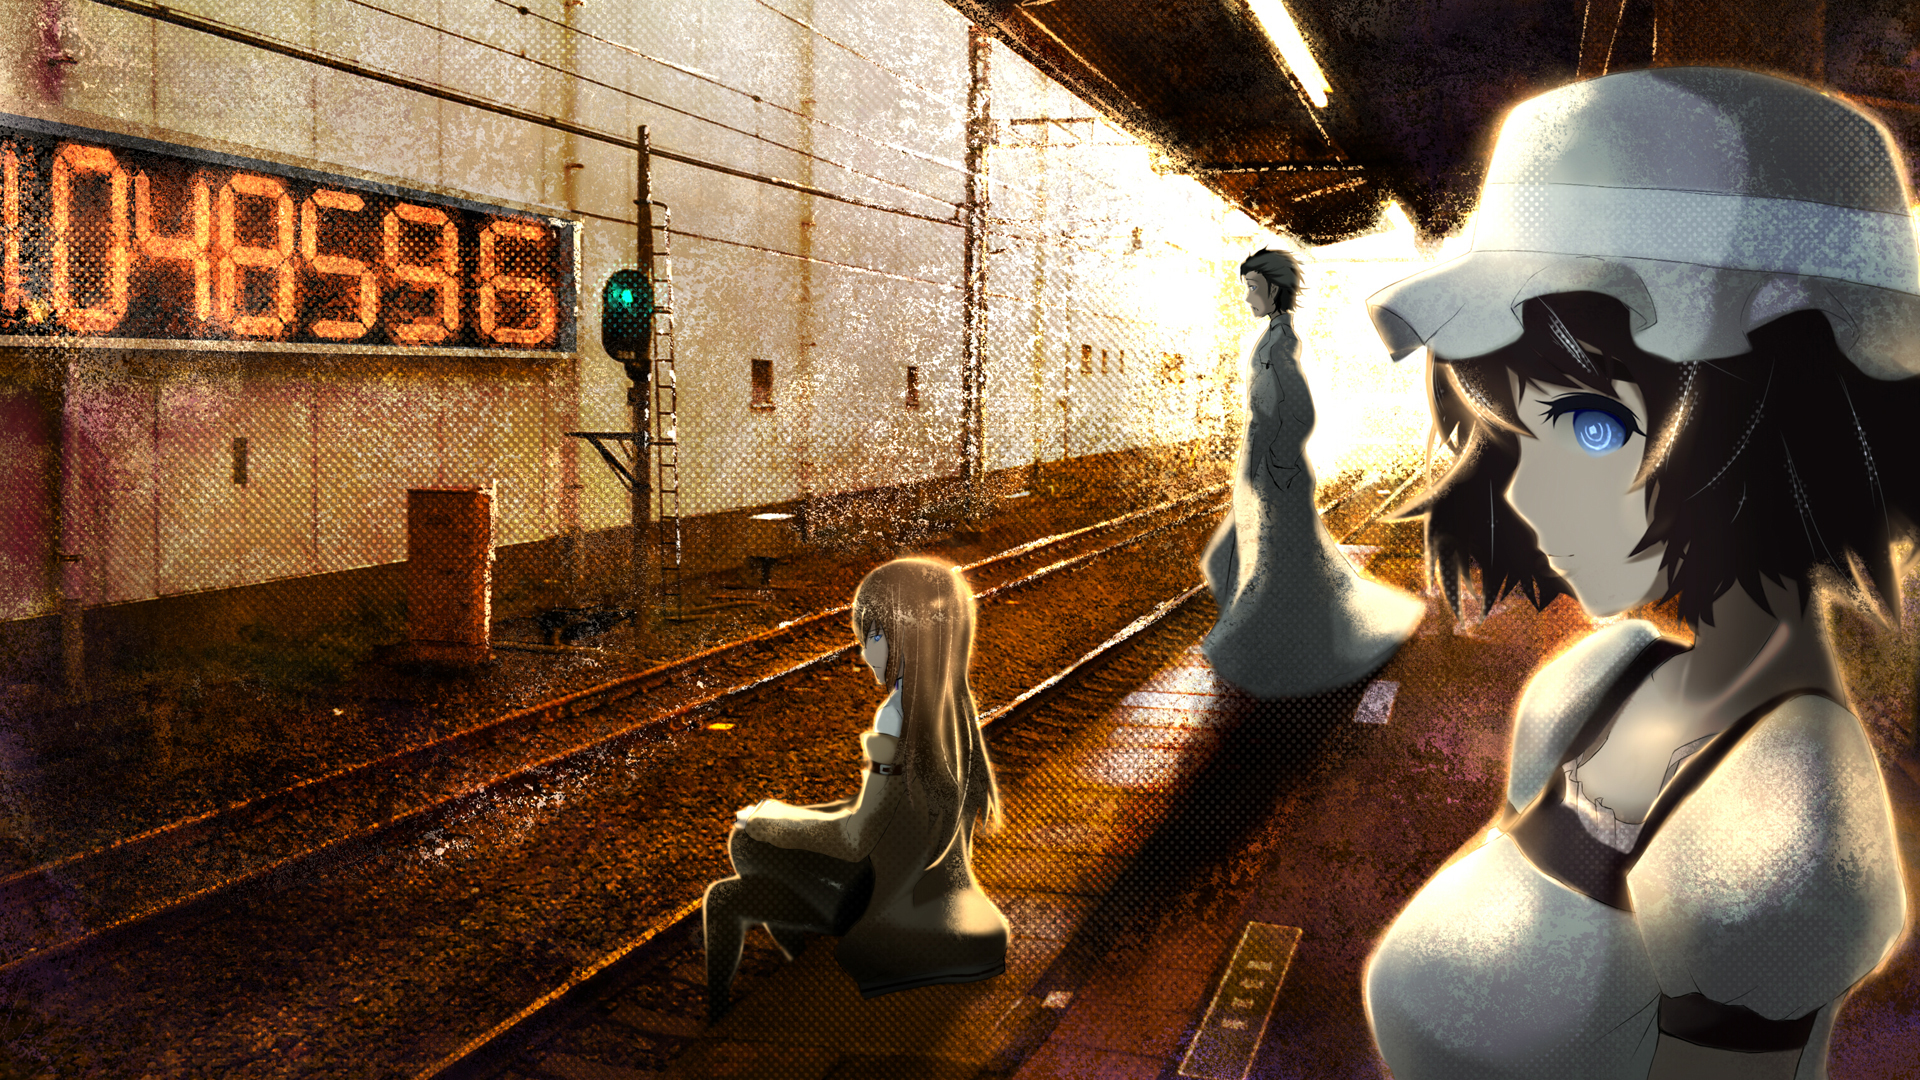 anime boys steins gate HD Wallpaper